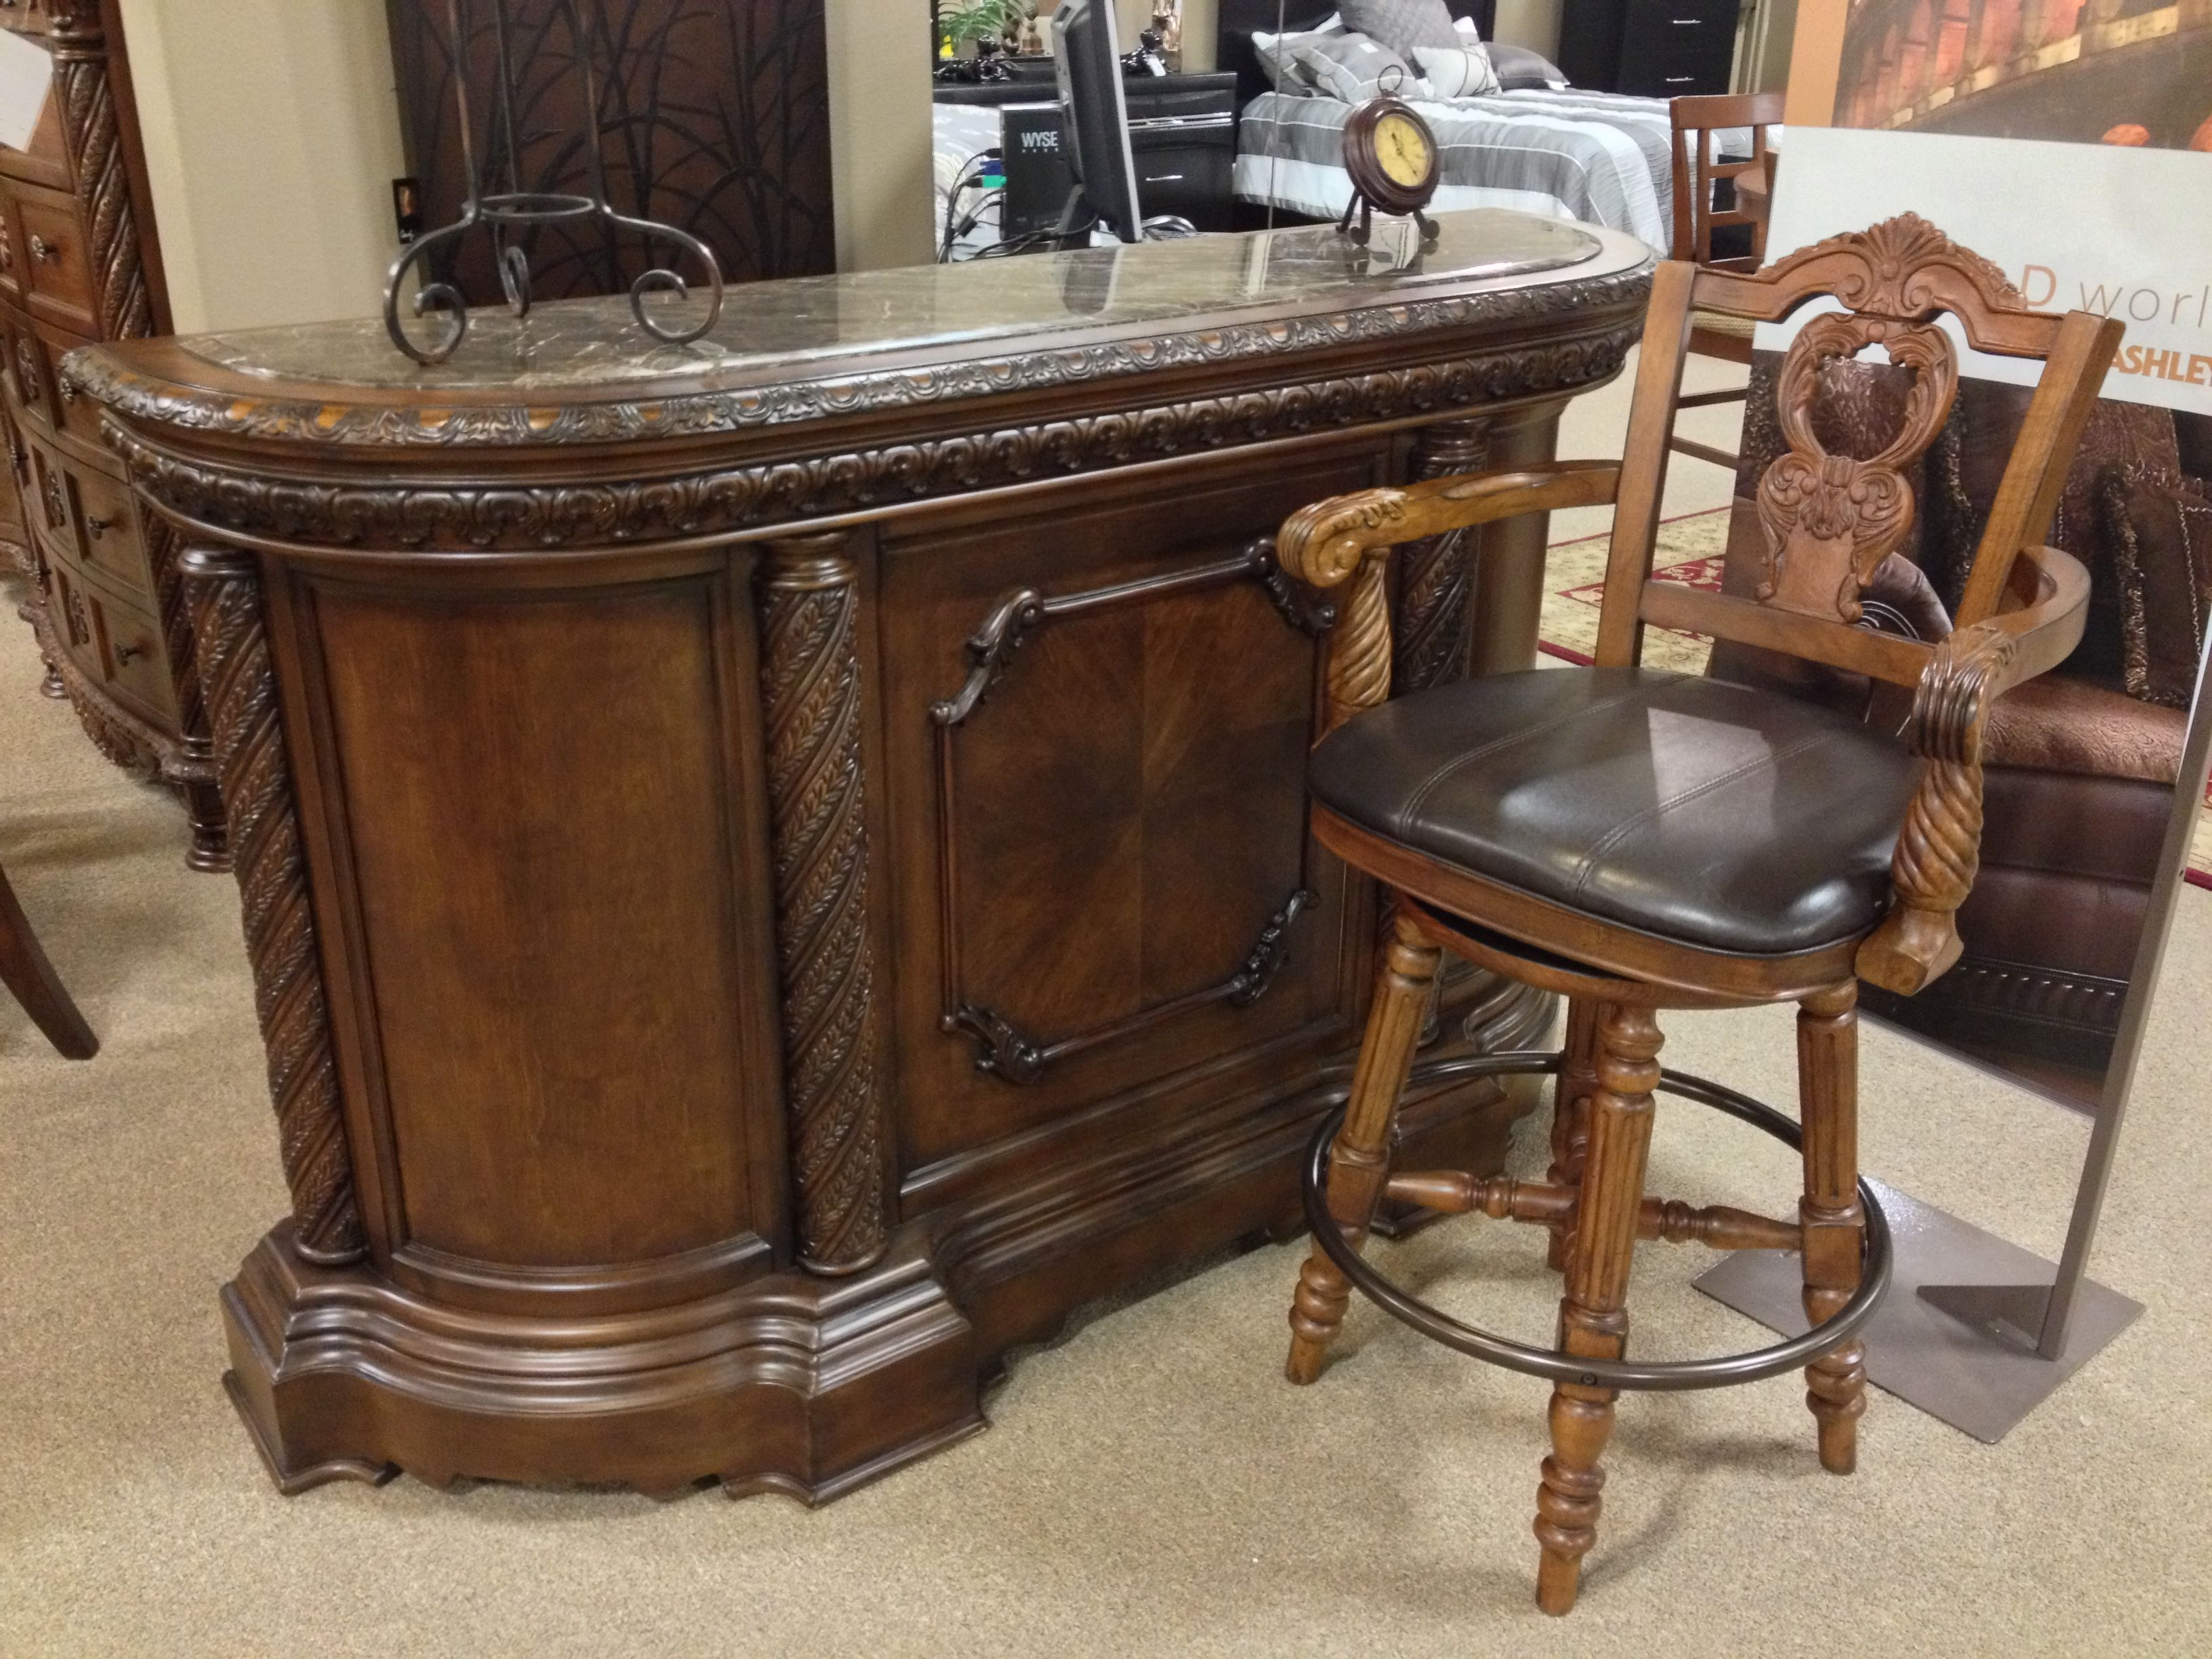 North Shore 3 Piece #Bar Set At Ashley #Furniture In #TriCities